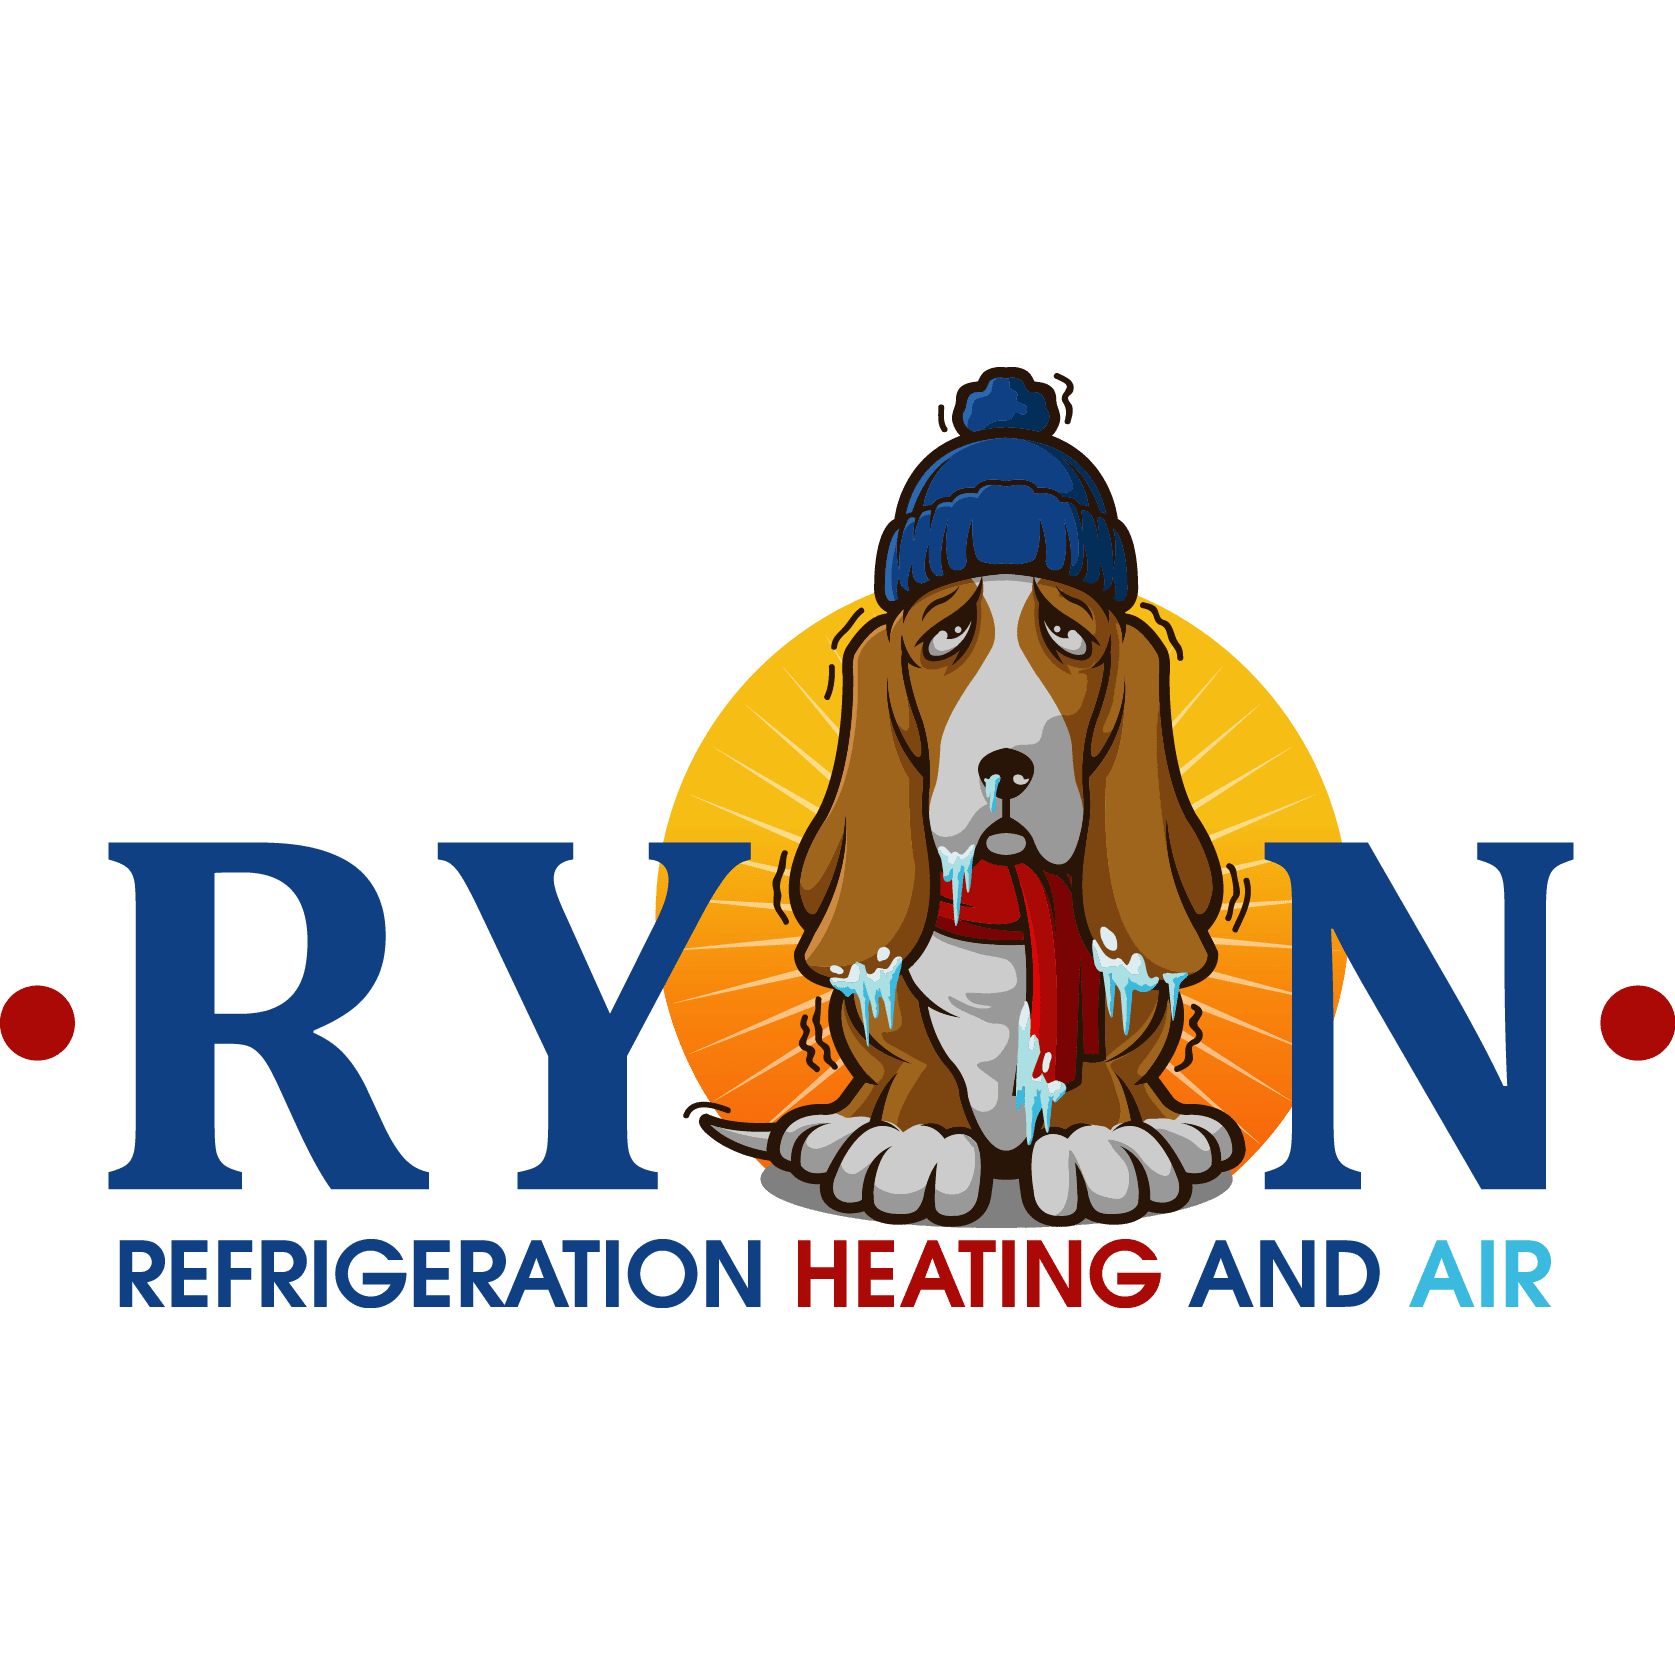 RYAN REFRIGERATION HEATING AND AIR